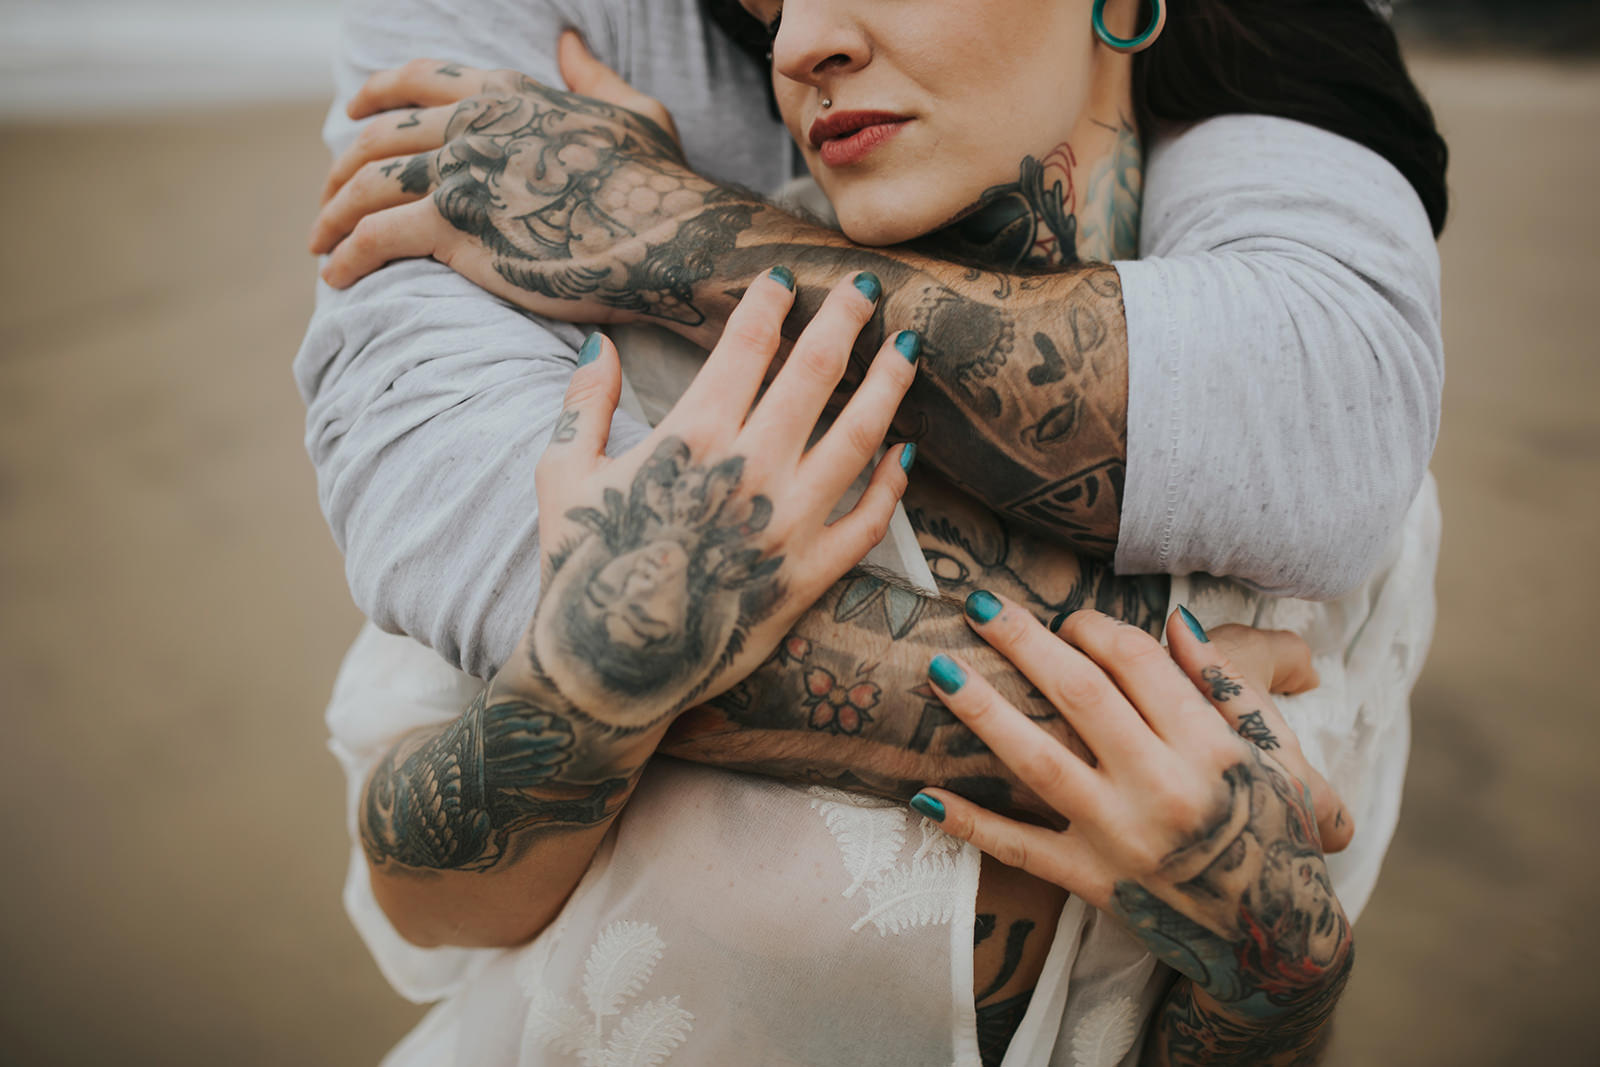 Free Online Dating In Free Dating Site For Tattoo Lovers